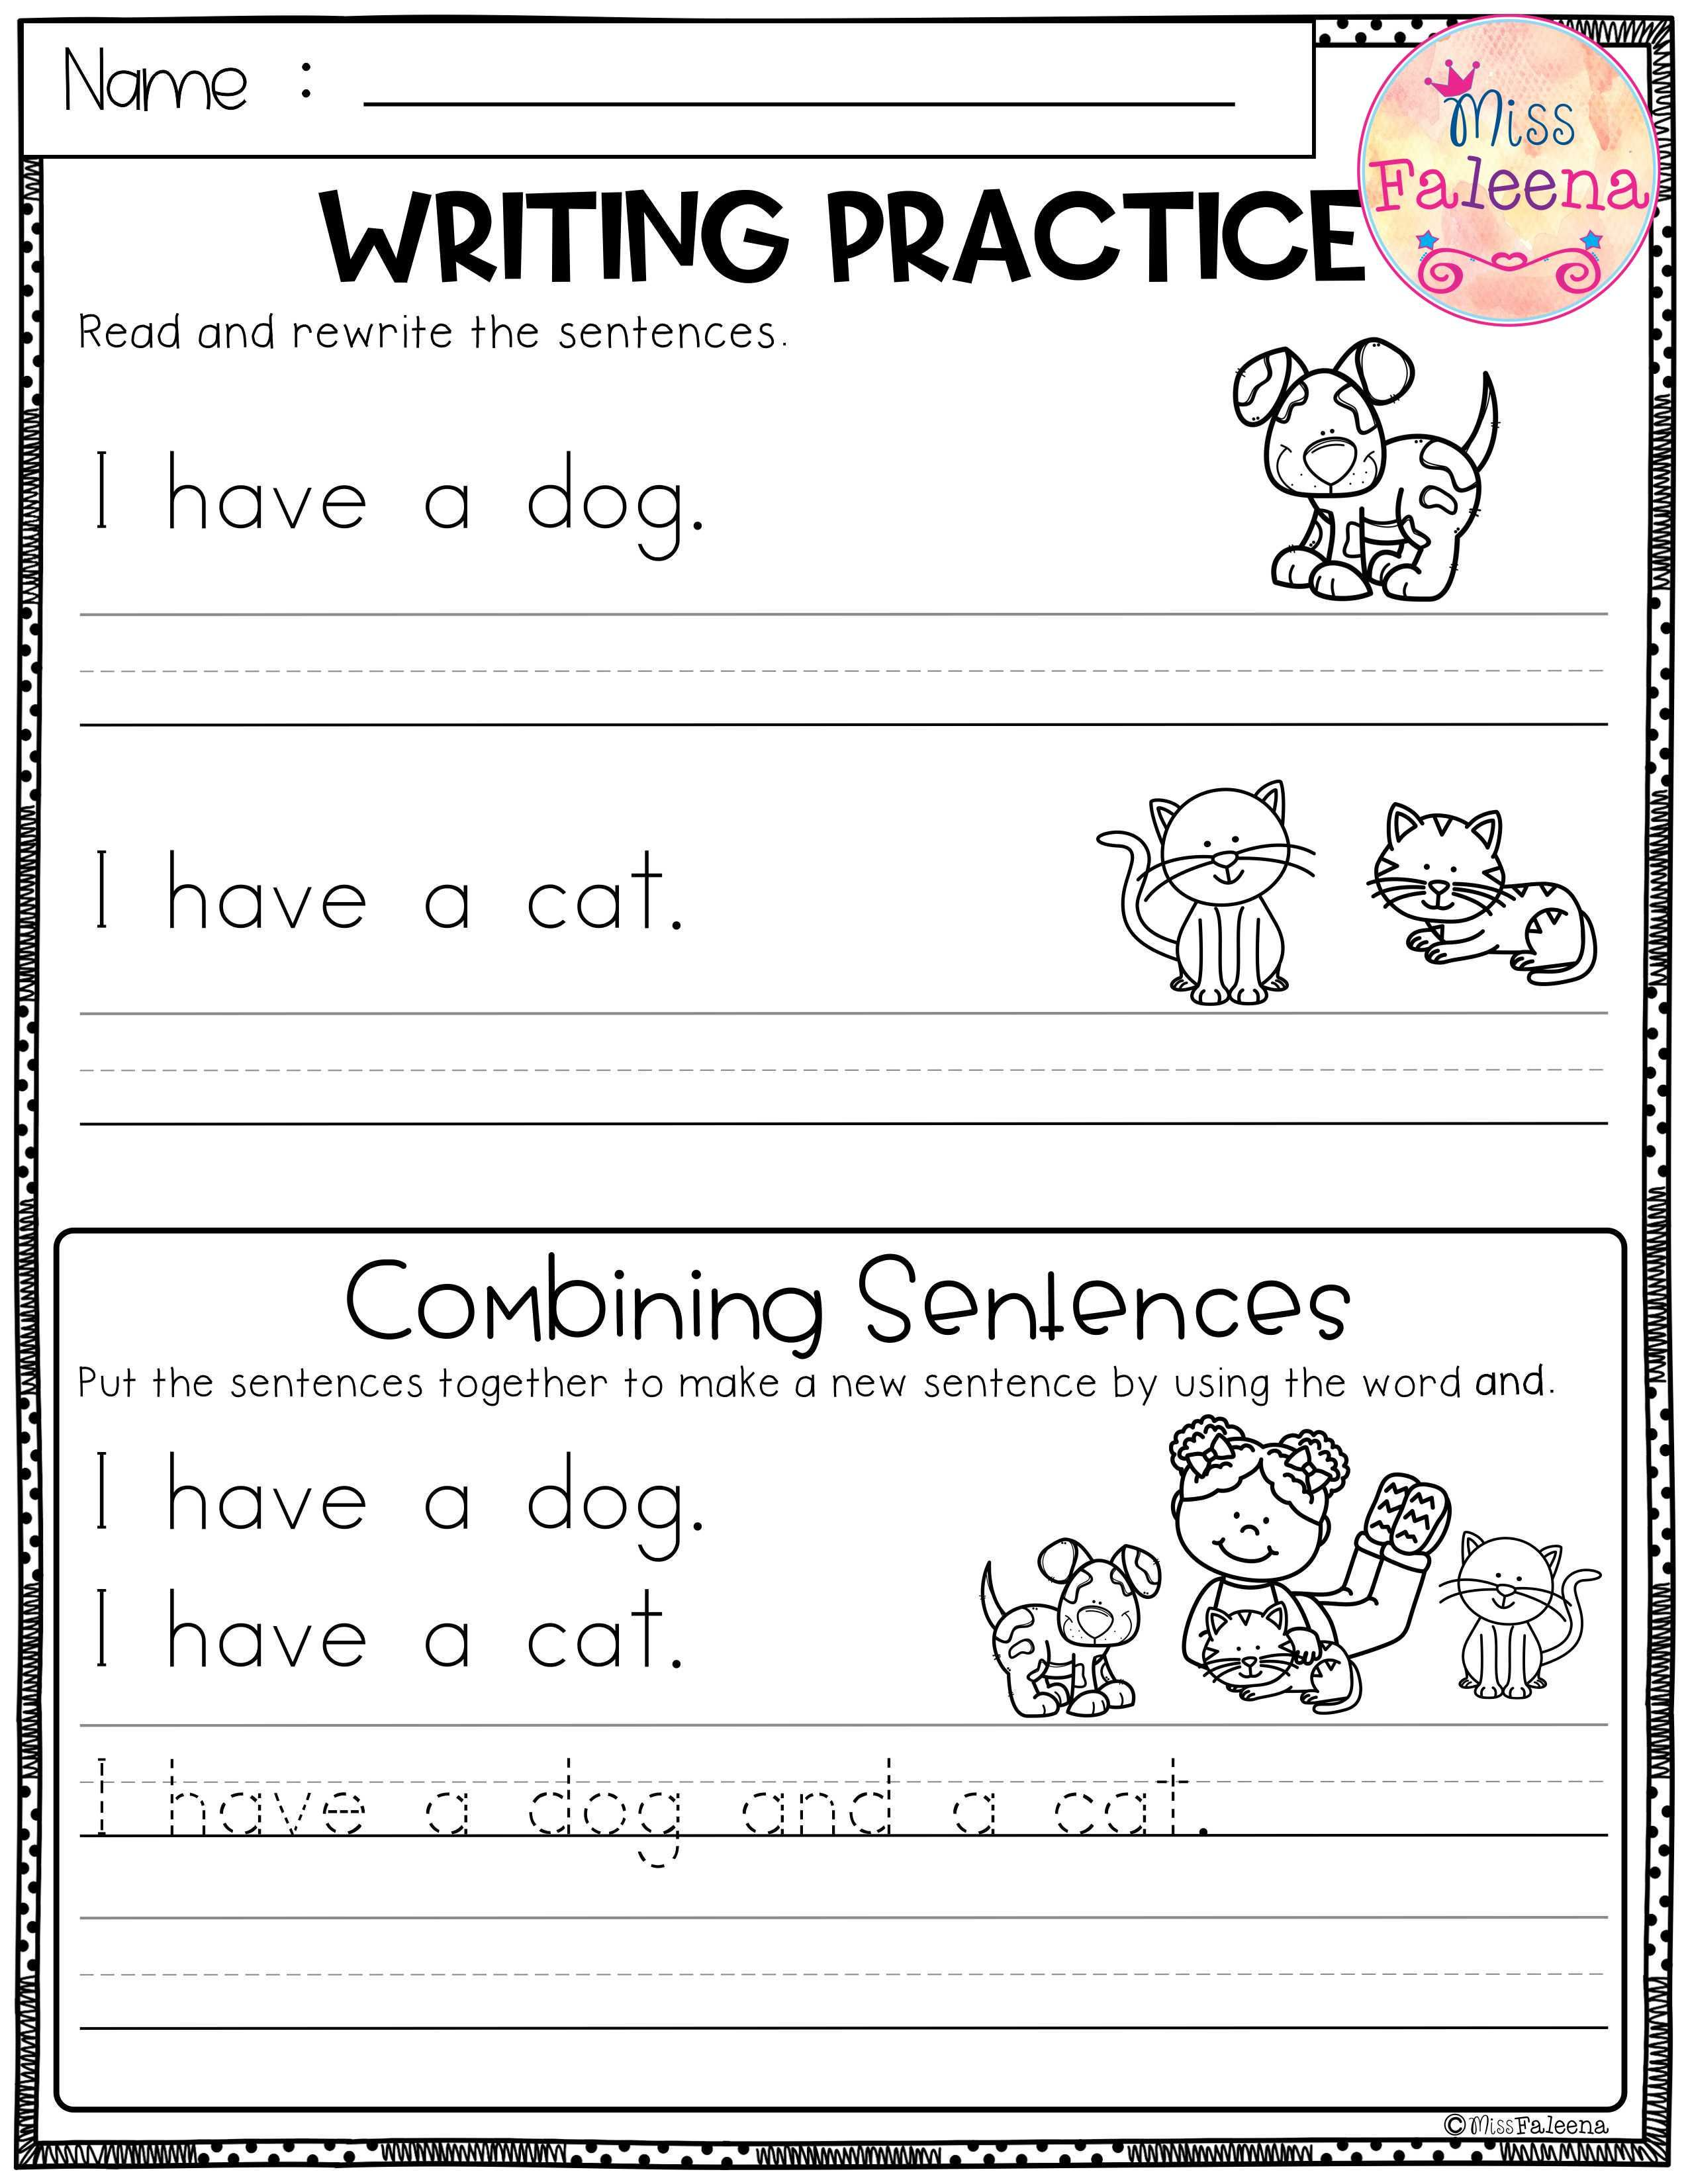 Free Writing Practice Combining Sentences Writing Practice